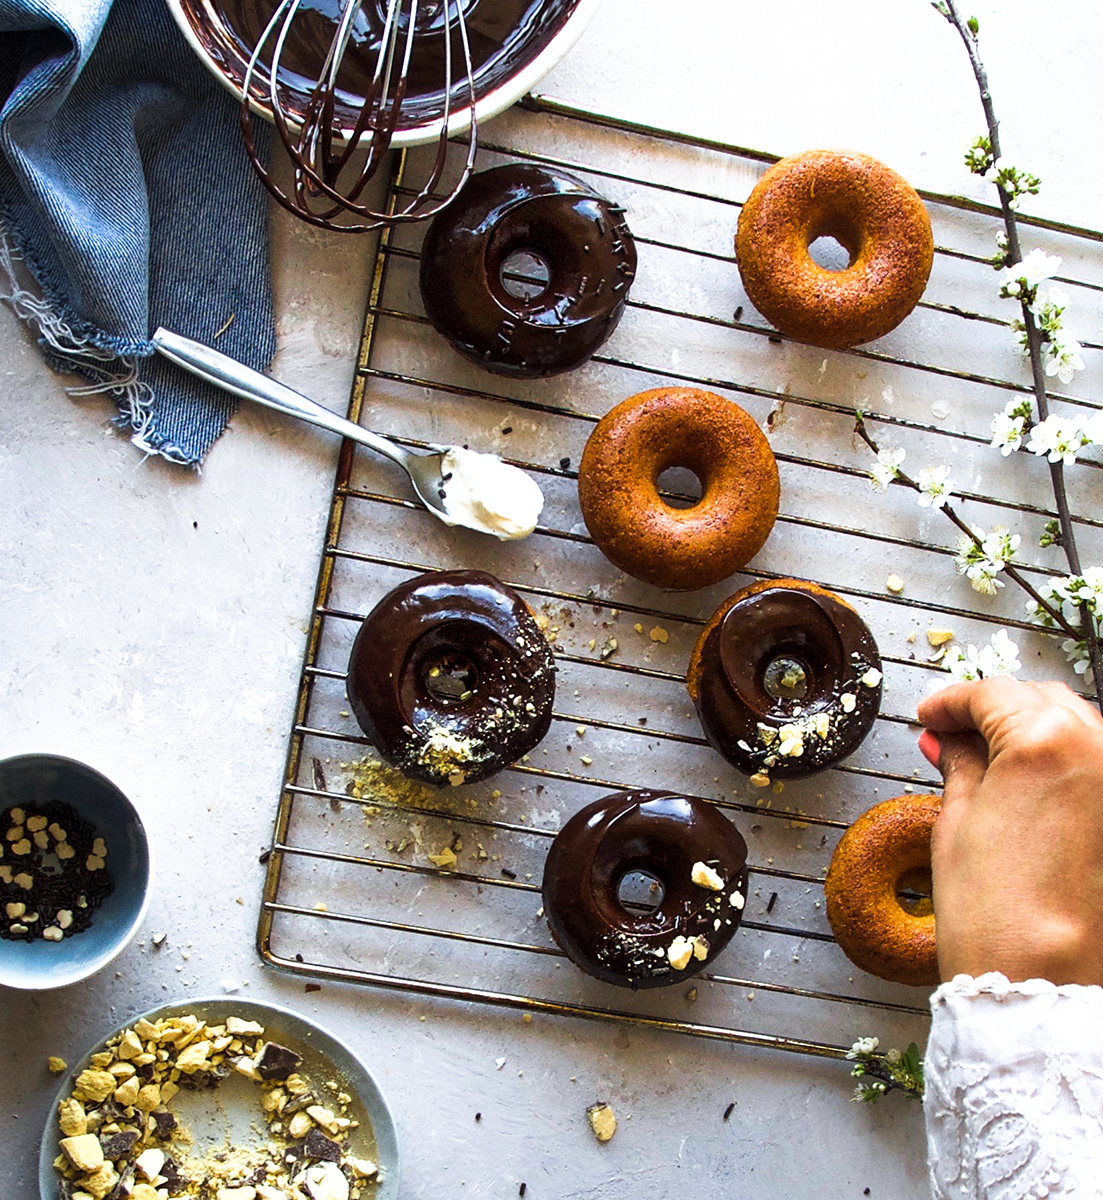 This baked spelt doughnuts were just perfect for my boys. I have used spelt flour instead of regular flour so they were bit dense but certainly tasty.